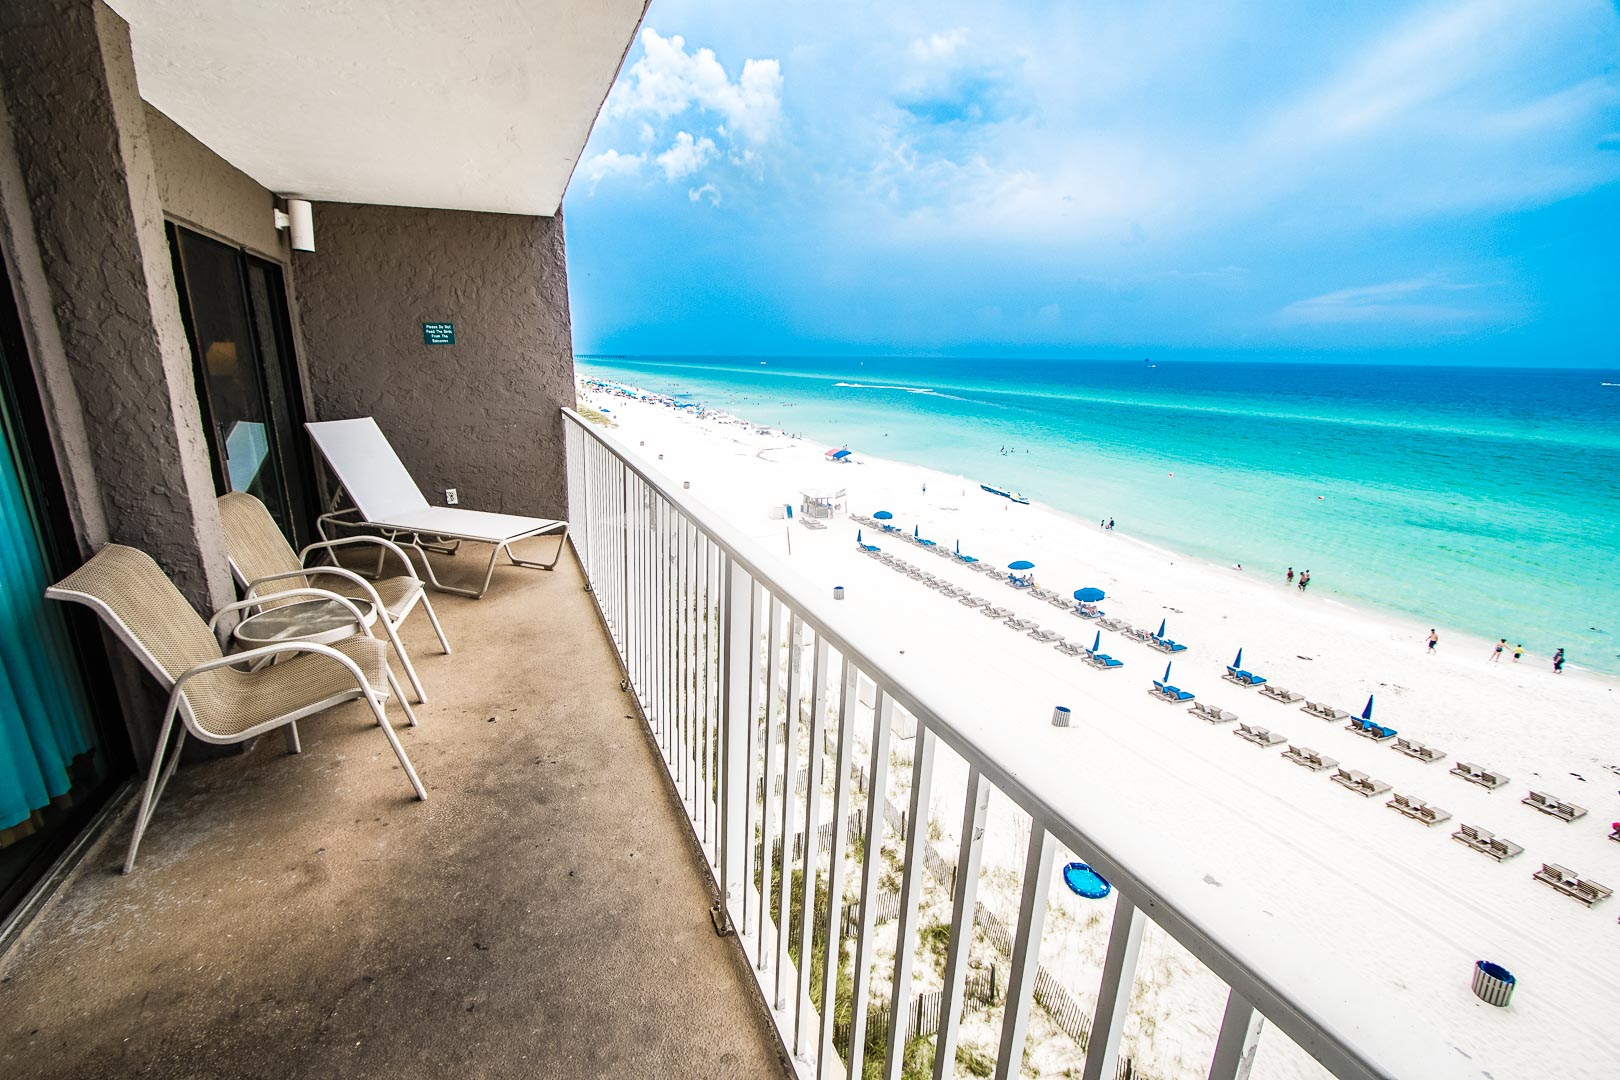 A relaxing view of the beach from the balcony at VRI's Landmark Holiday Beach Resort in Panama City, Florida.